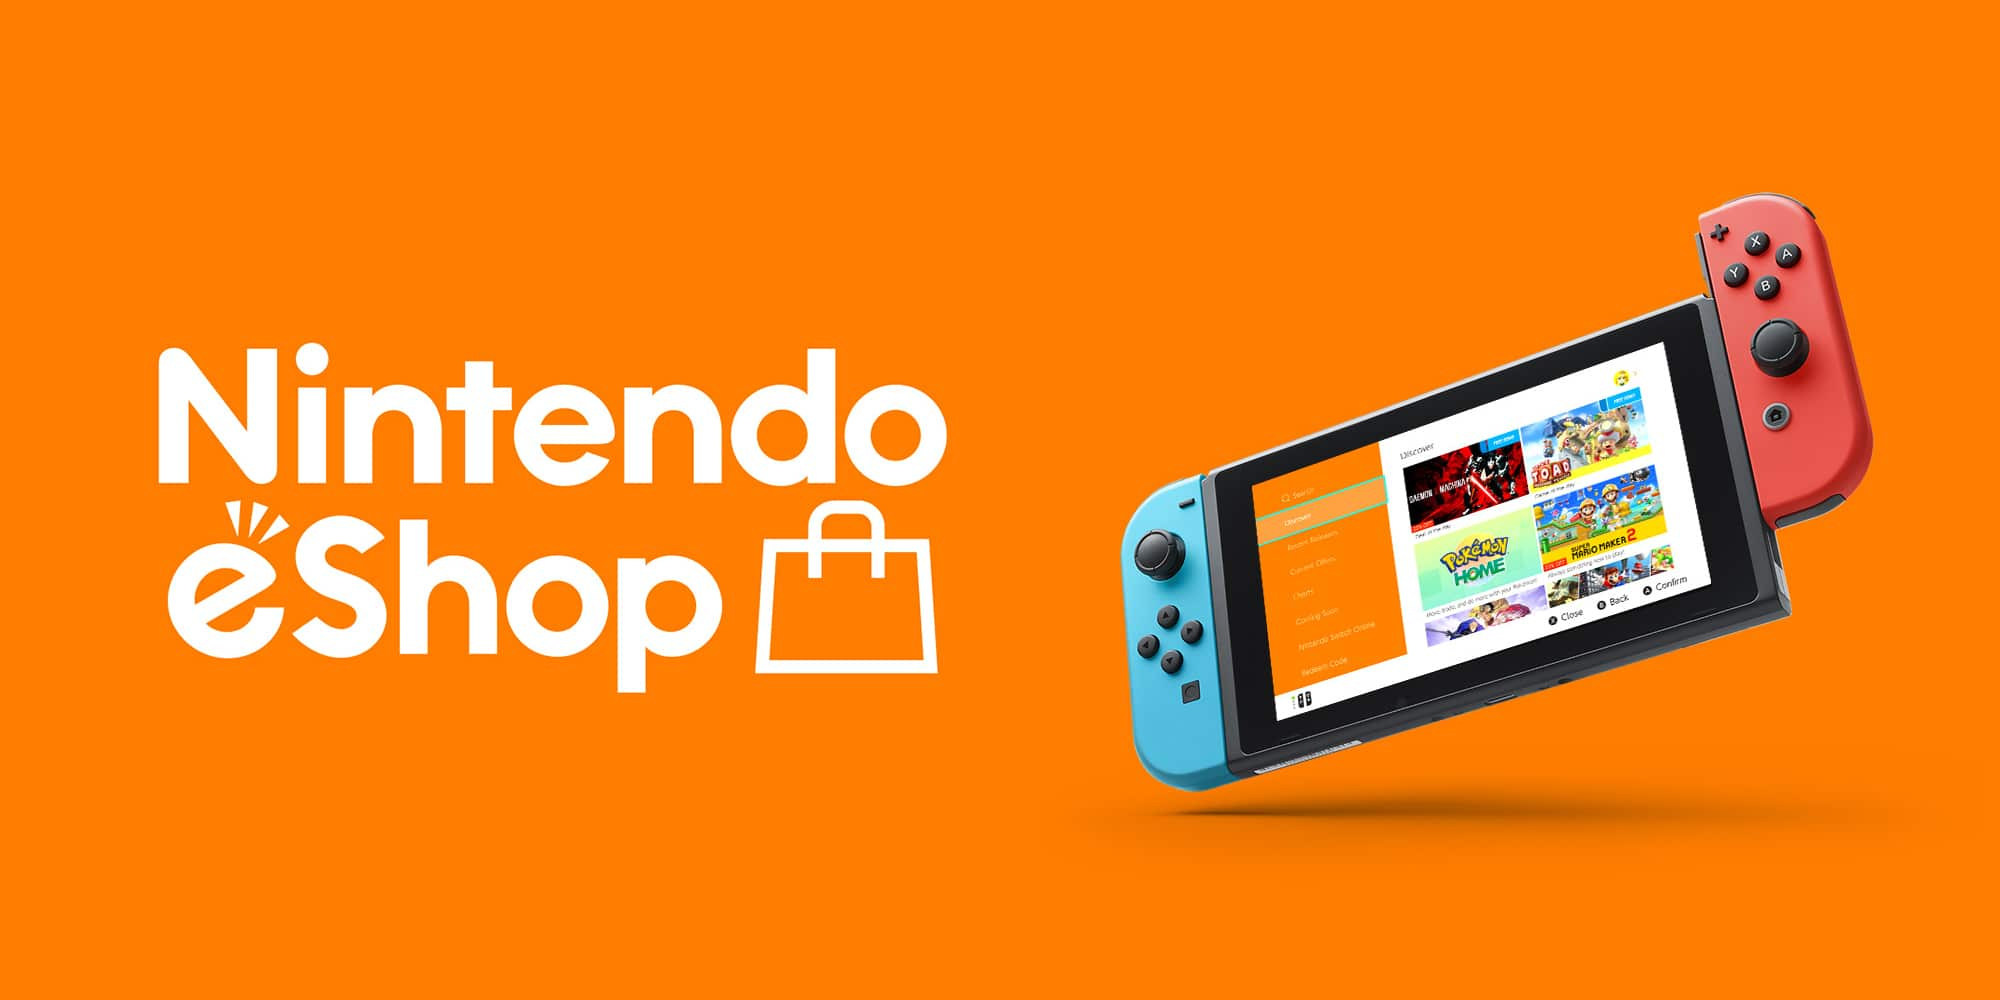 Nintendo eShop Cover Art